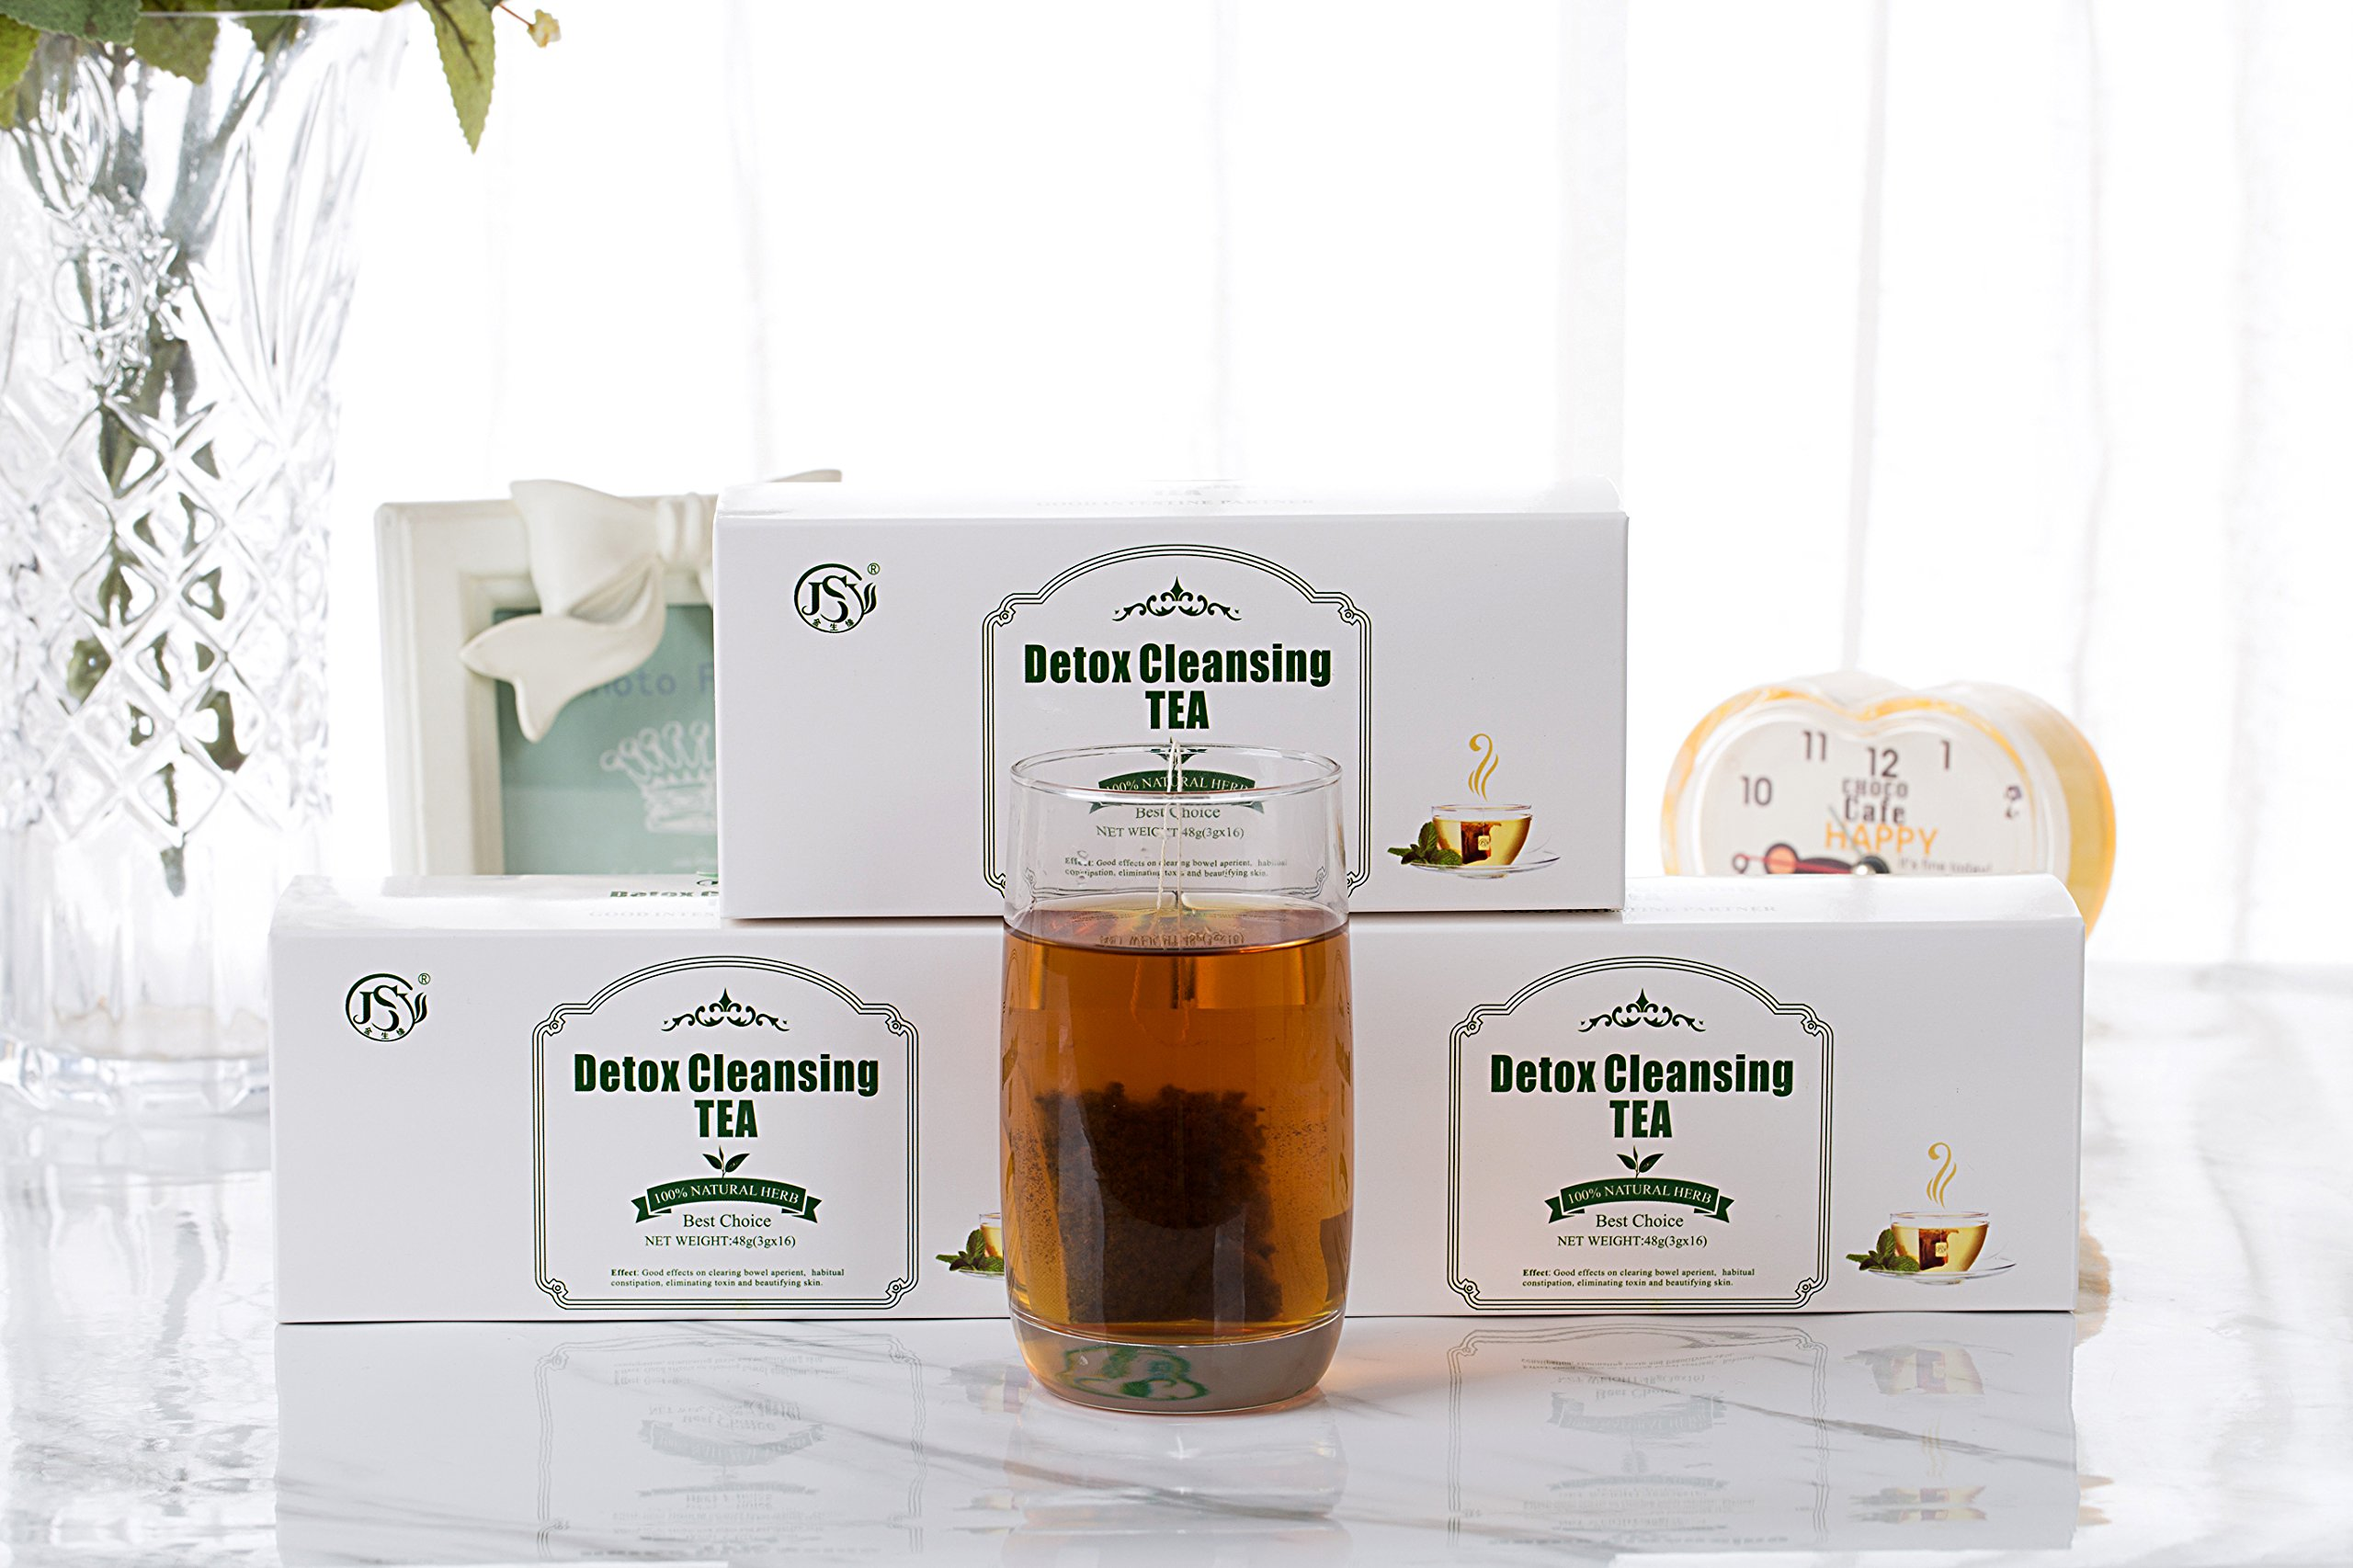 SSZY Tea JSY Detox Herbal Weight Loss Tea Premium Chinese Slimming Green Tea for Reduce Fat Lipo Targets Belly Fat, All Natural Blend of Oolong Tea Green Tea and Senna (Detox Cleansing Tea)